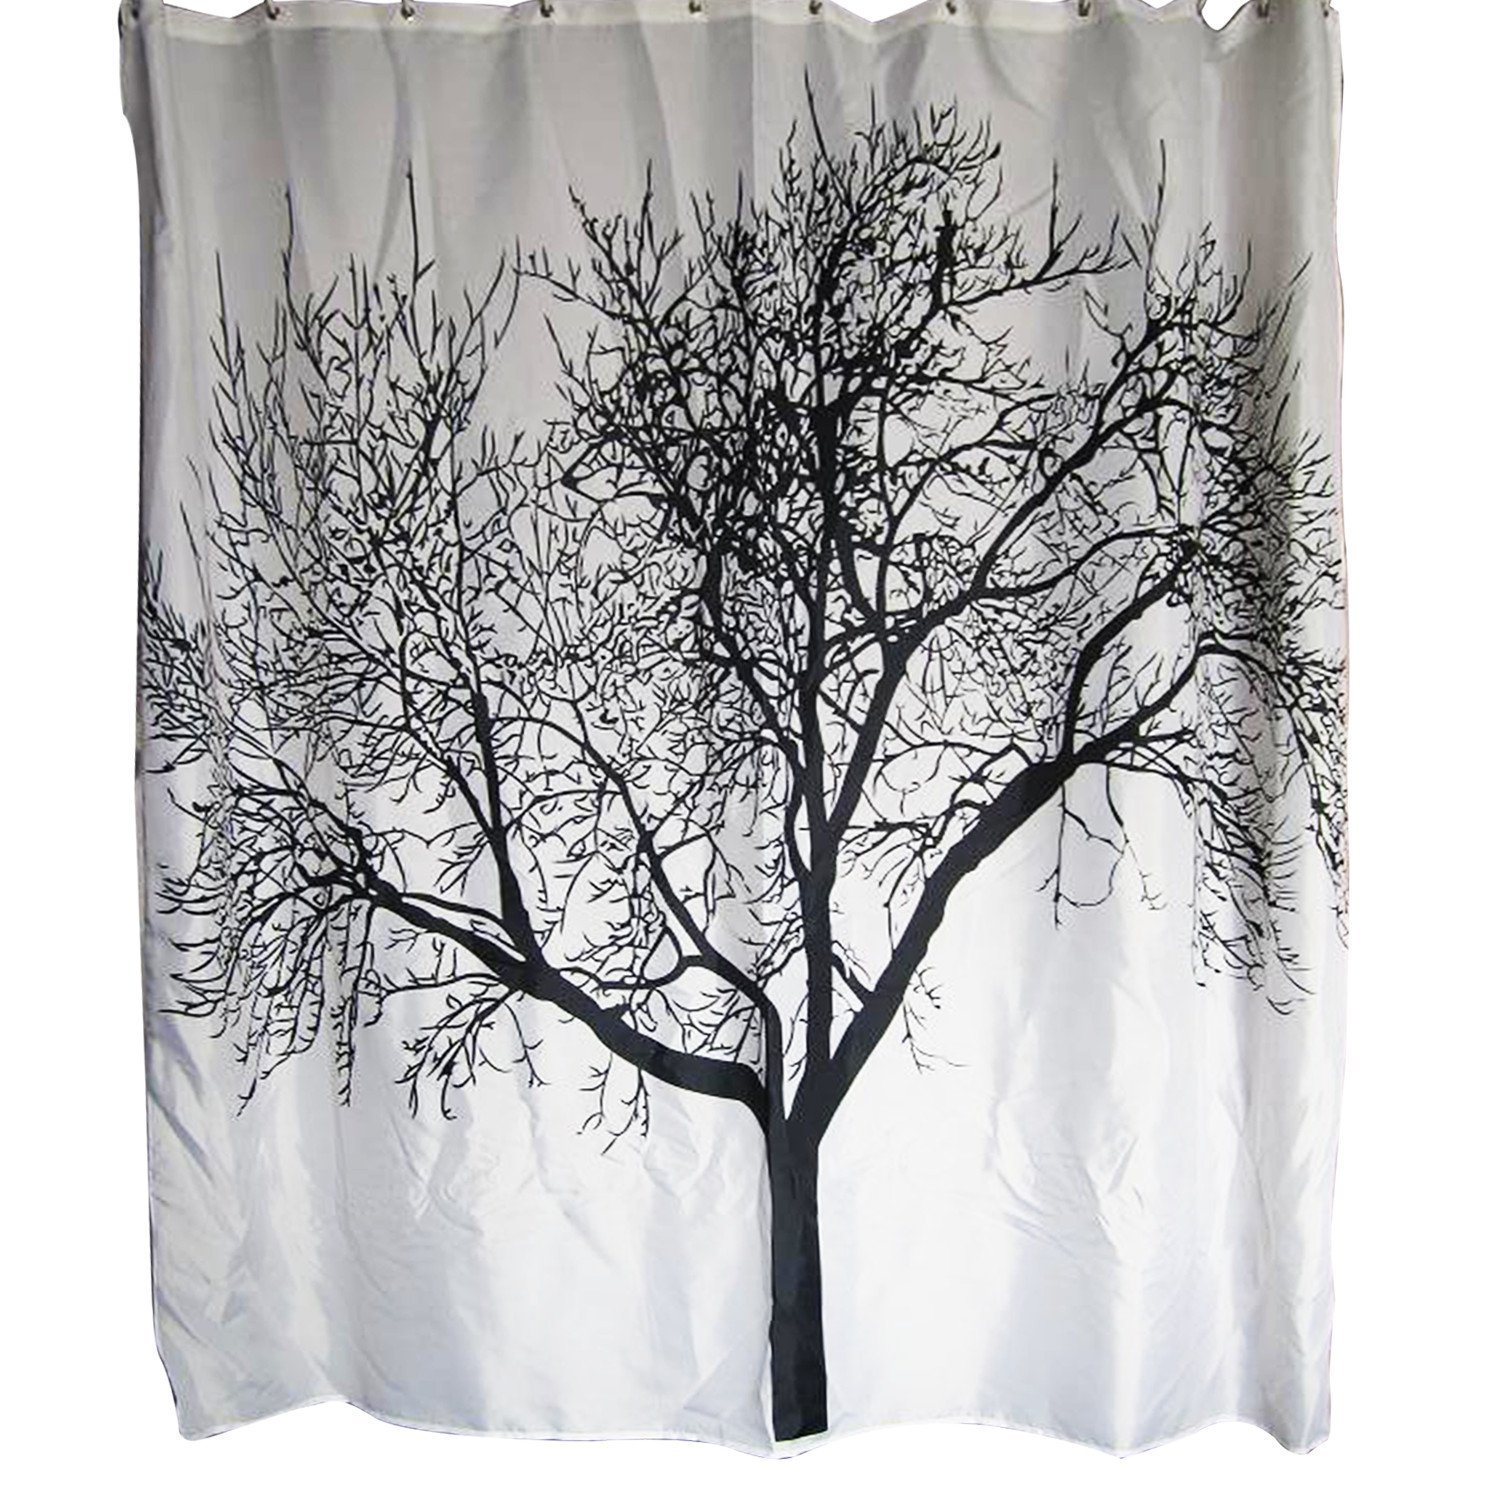 Dozenegg Waterproof Shower Curtain With Tree Design 180 cm X 180 cm